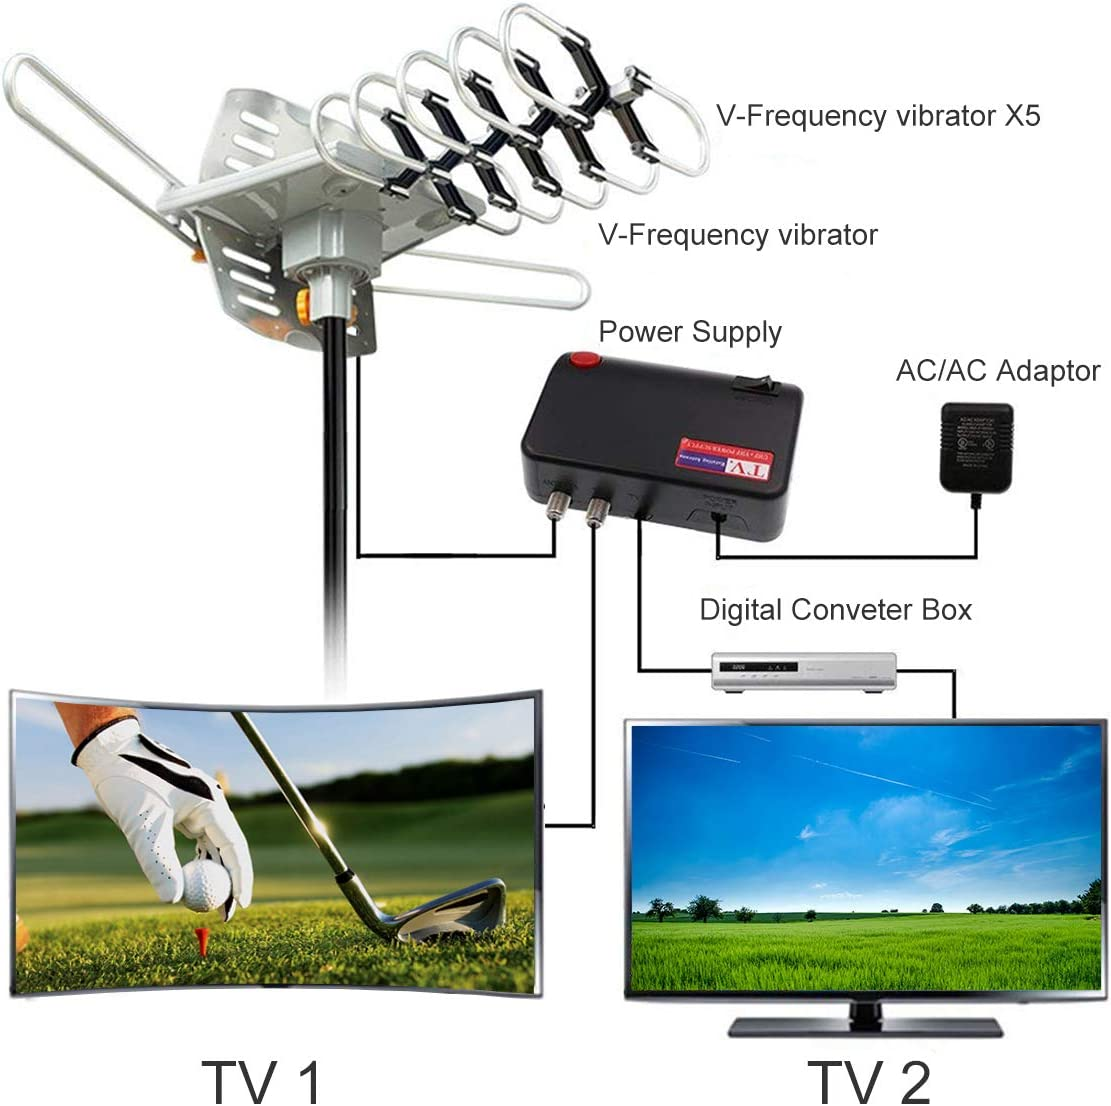 2019 Newest Version with 4K 33 Feet Coax Cable with Mounting Pole Outdoor TV Antenna 150 Miles Amplified Digital HDTV Antenna with 360/°Rotation,Wireless Remote Control